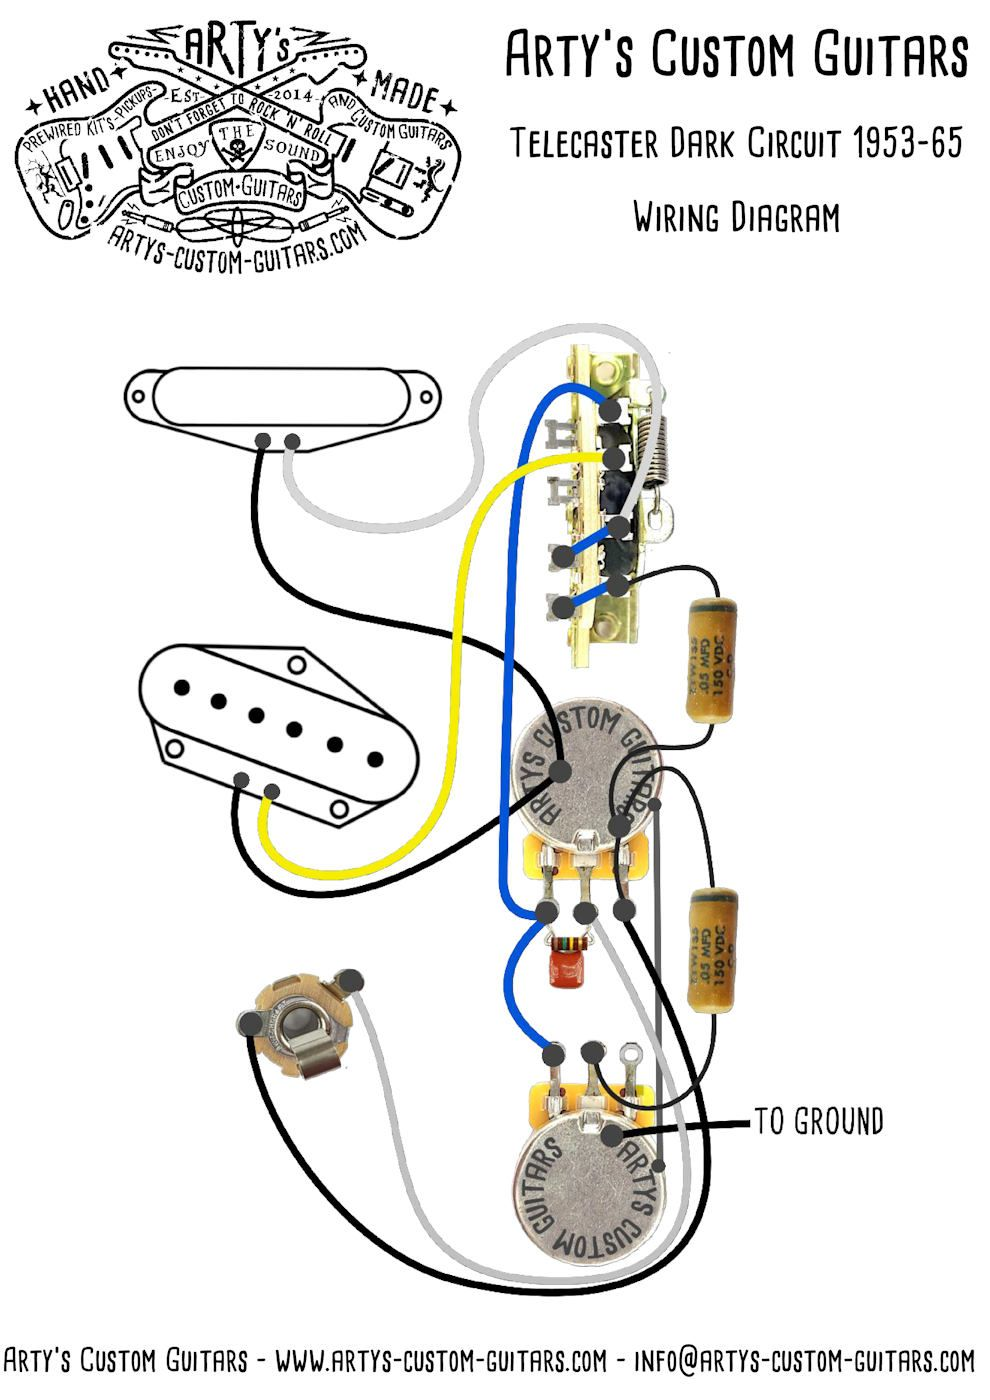 [SCHEMATICS_43NM]  PREWIRED KIT 1953-65 TELE | Telecaster, Telecaster guitar, Custom guitar  picks | Vintage Telecaster Wiring Harness Kit |  | Pinterest